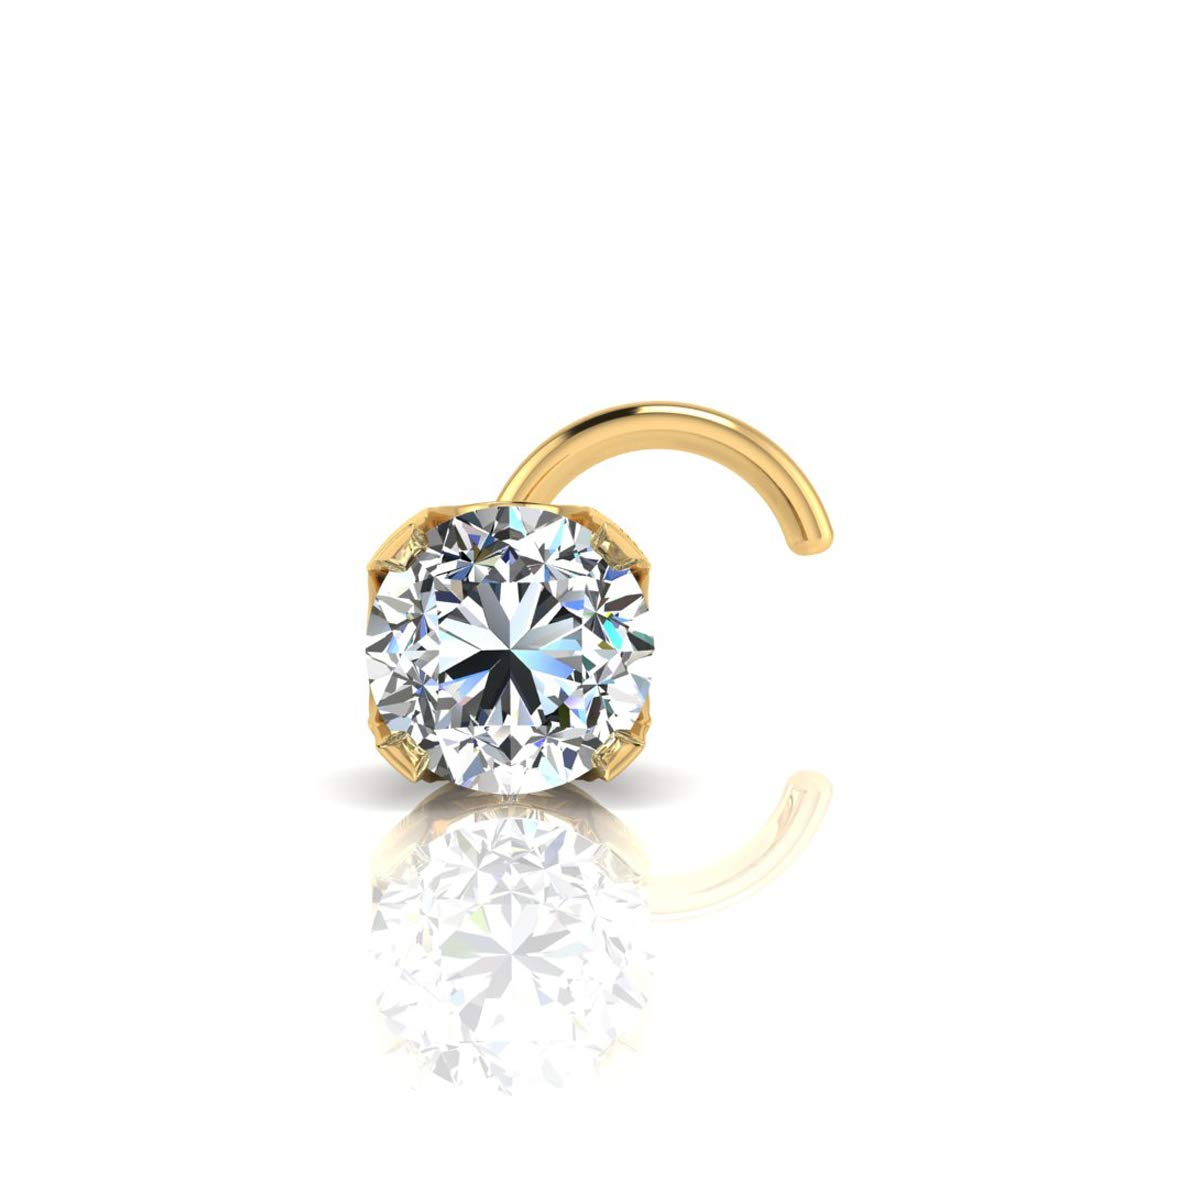 2mm 0.03 Carat Diamond Stud Nose Ring In 14K Yellow Gold by Sparkle Bargains